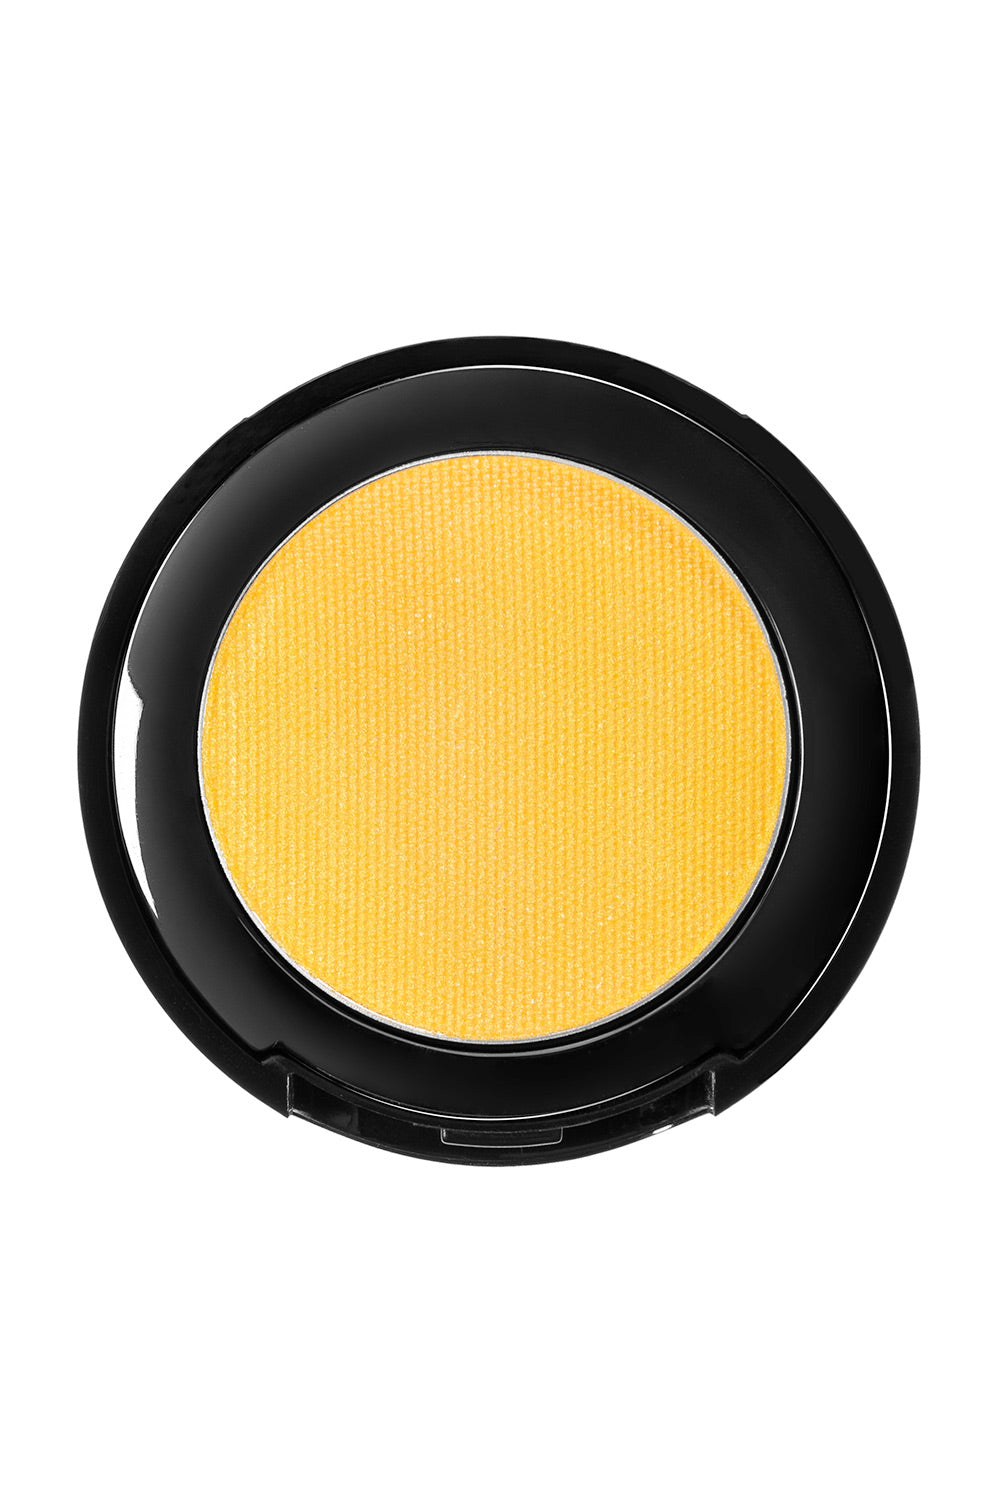 Type 4 Eyeshadow - Queen Bee